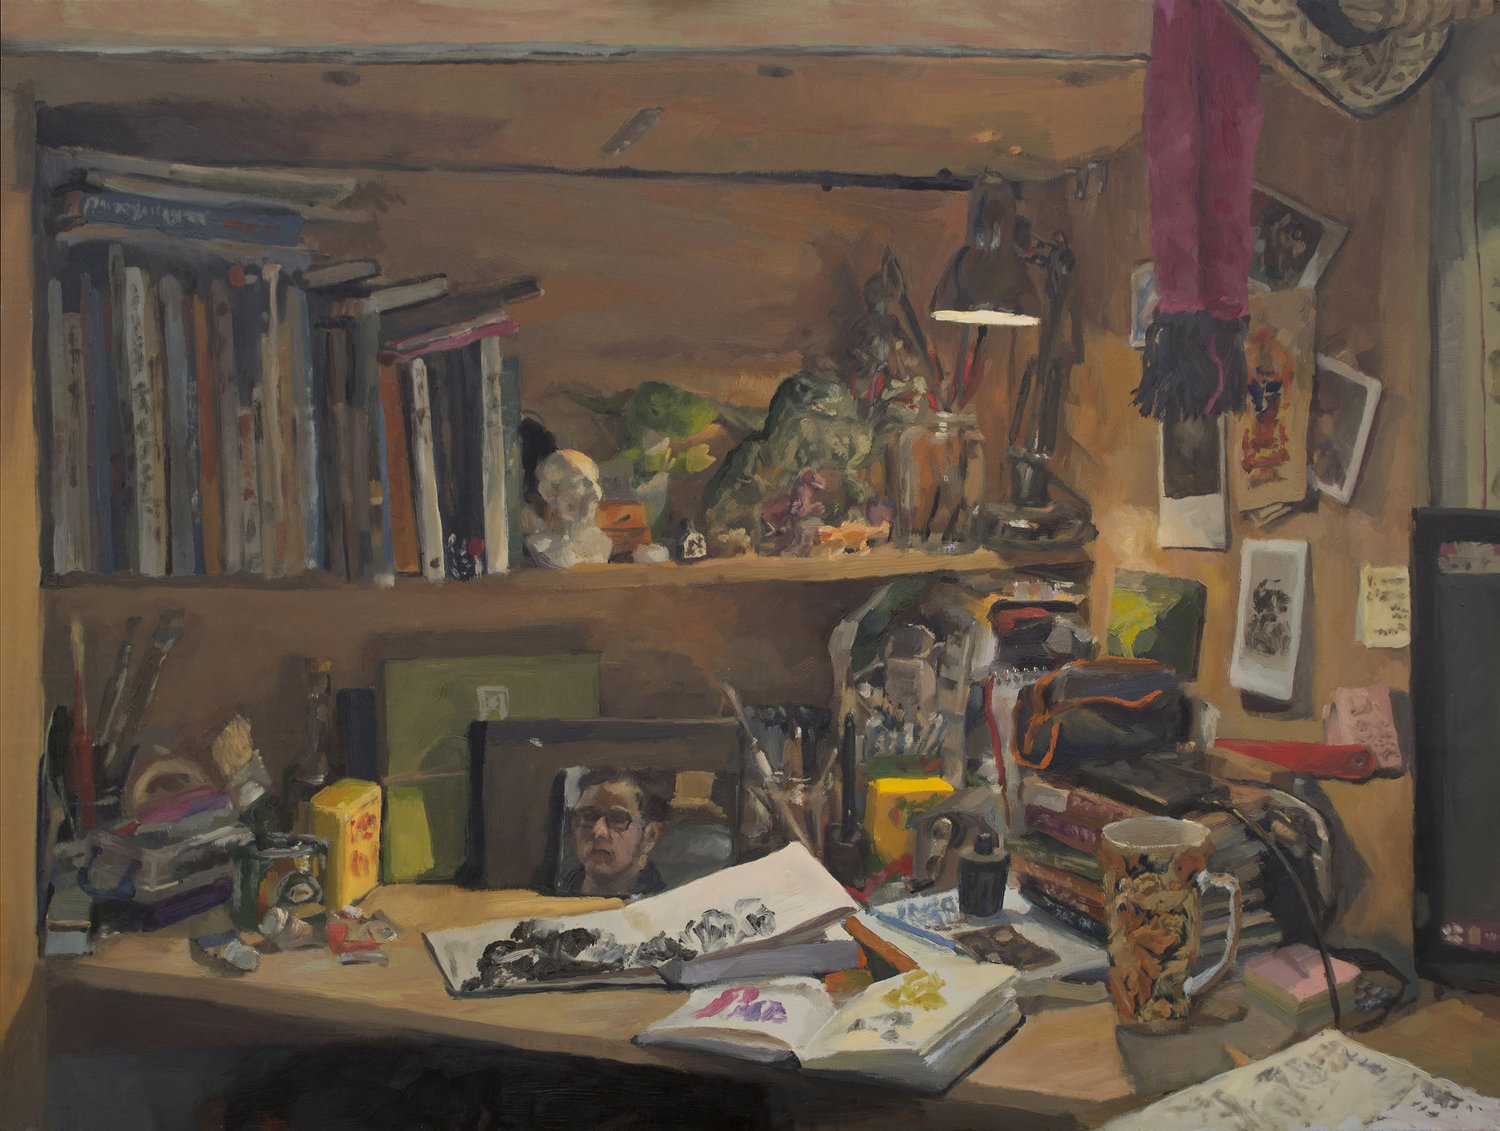 'Messy Desk', Lancelot Richardson, Oil on board, 45.8 x 61 cm